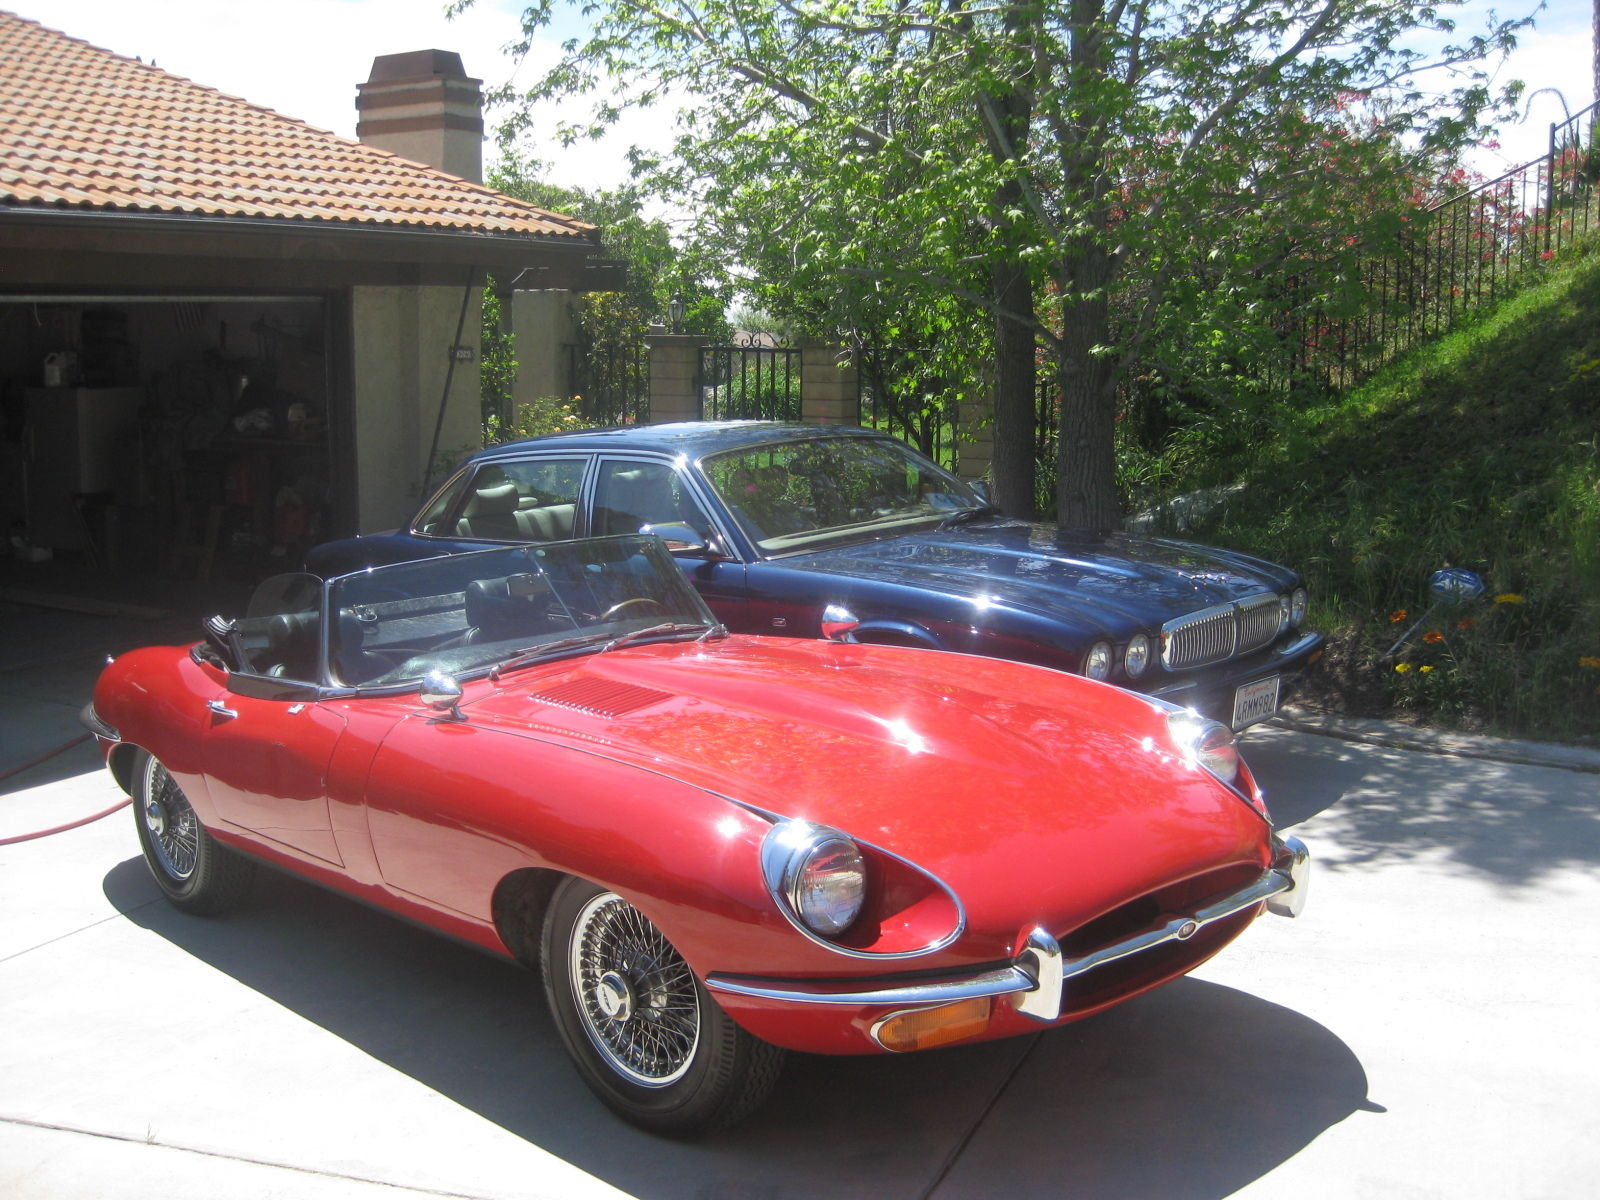 1969 jaguar e type roadster for sale in dublin ohio. Black Bedroom Furniture Sets. Home Design Ideas